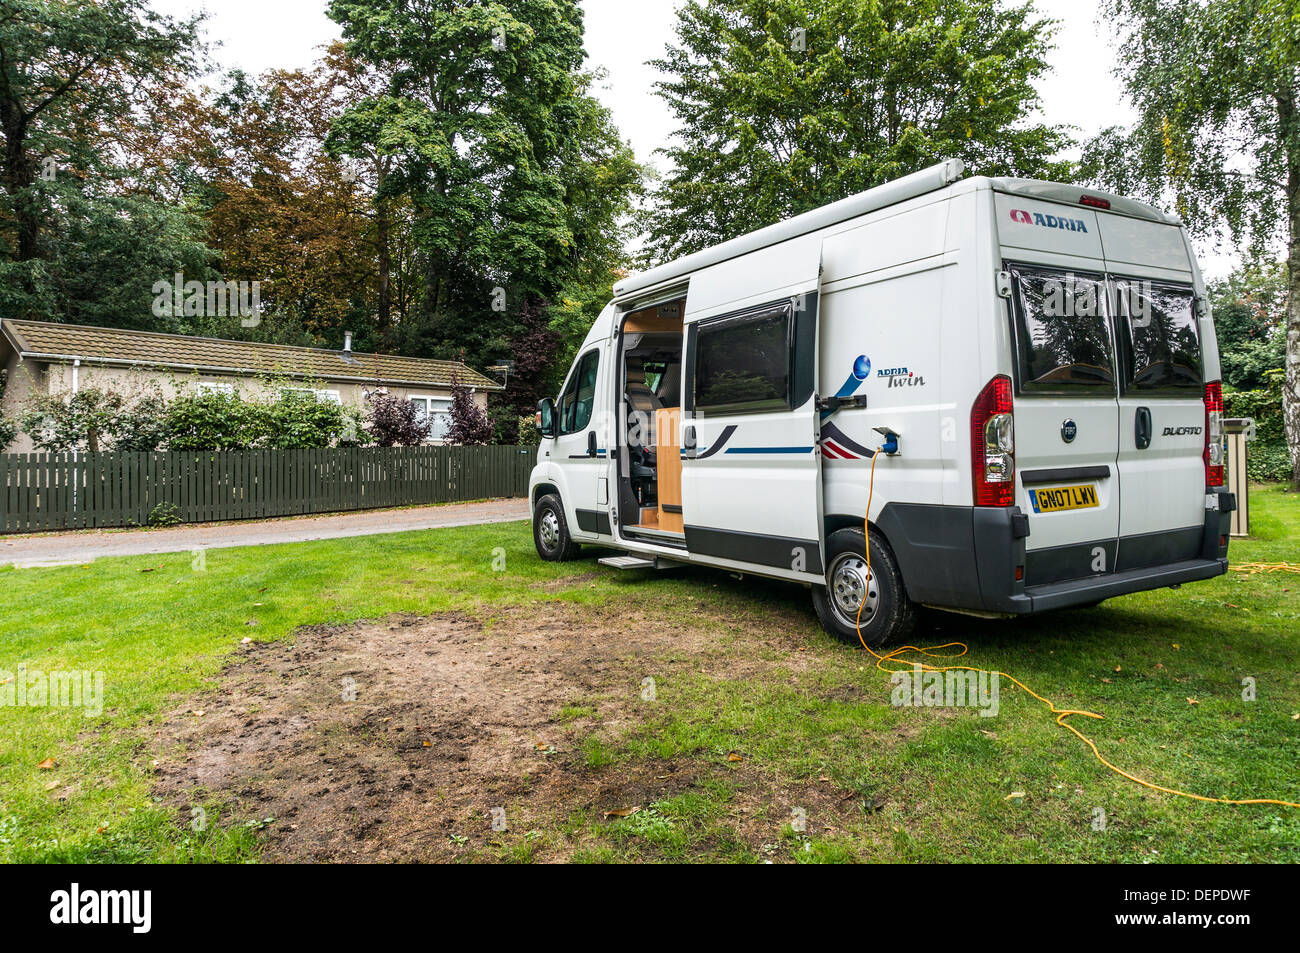 An Adria Twin motorhome parked on a pitch at the Crystal Palace Caravan Club site, London England. - Stock Image